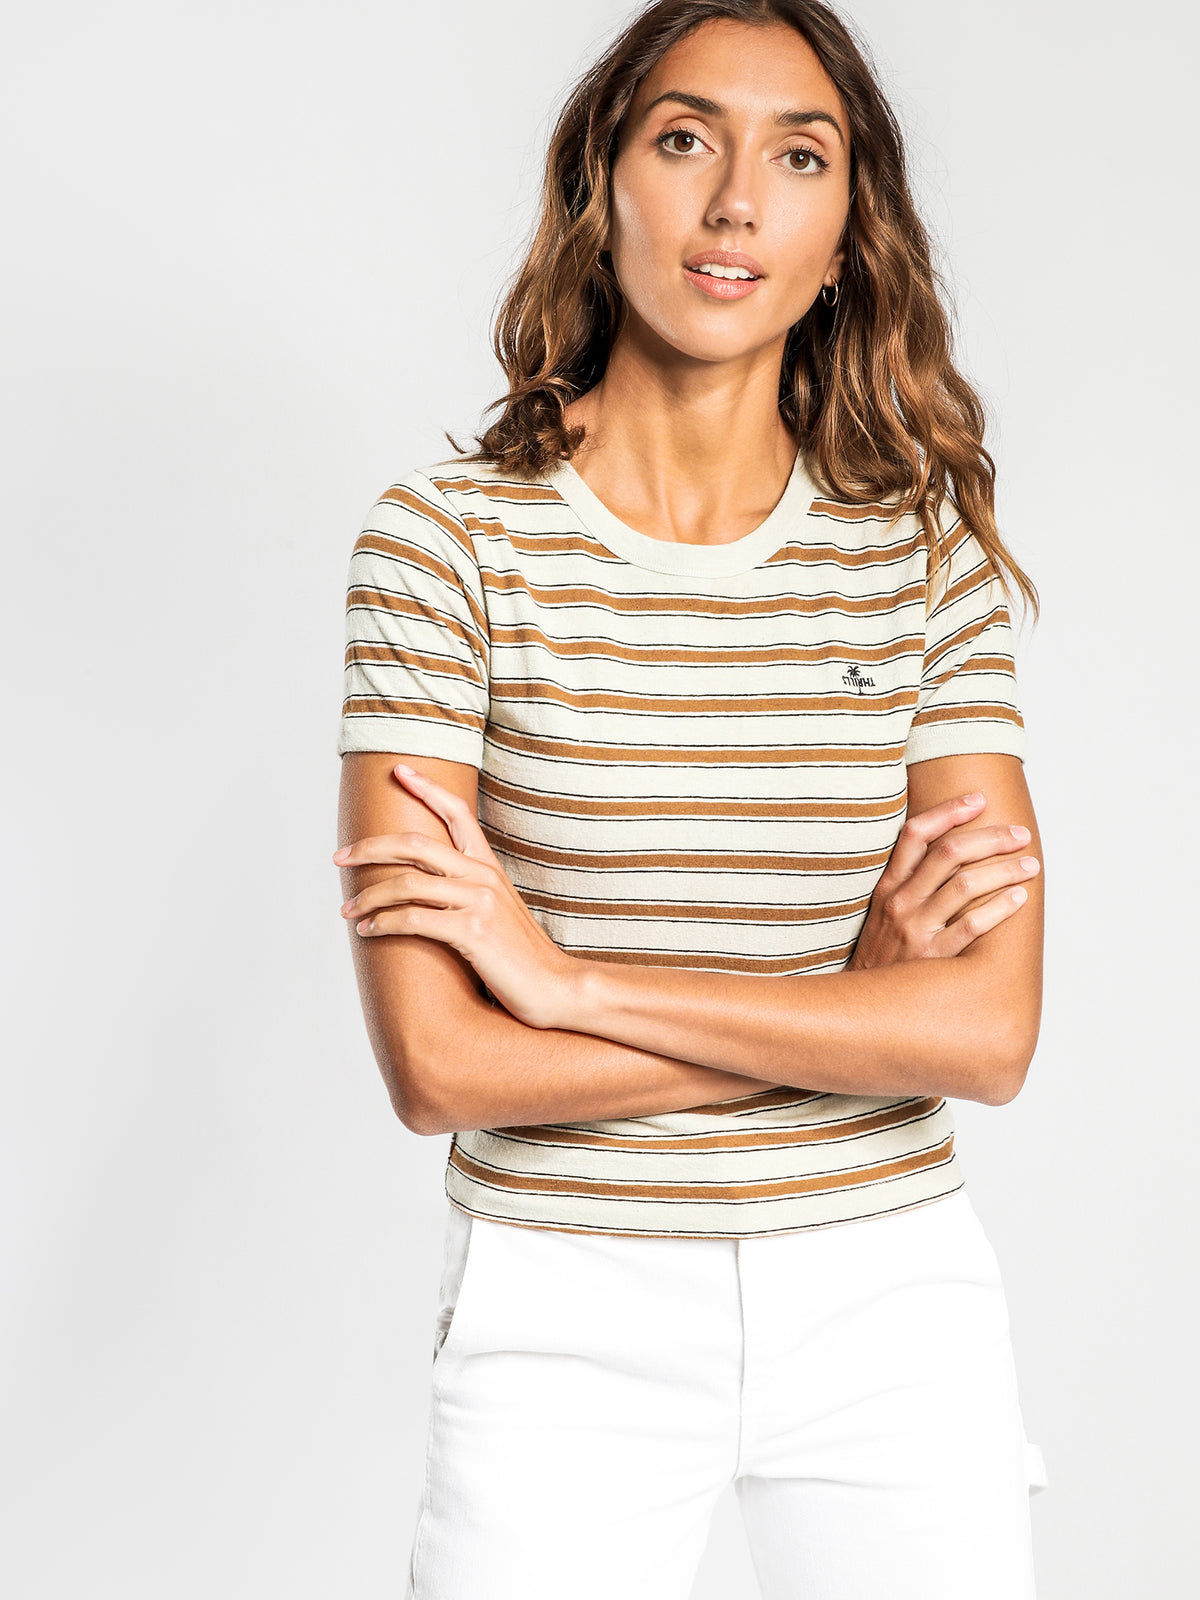 Commune T-Shirt in Cement Stripe